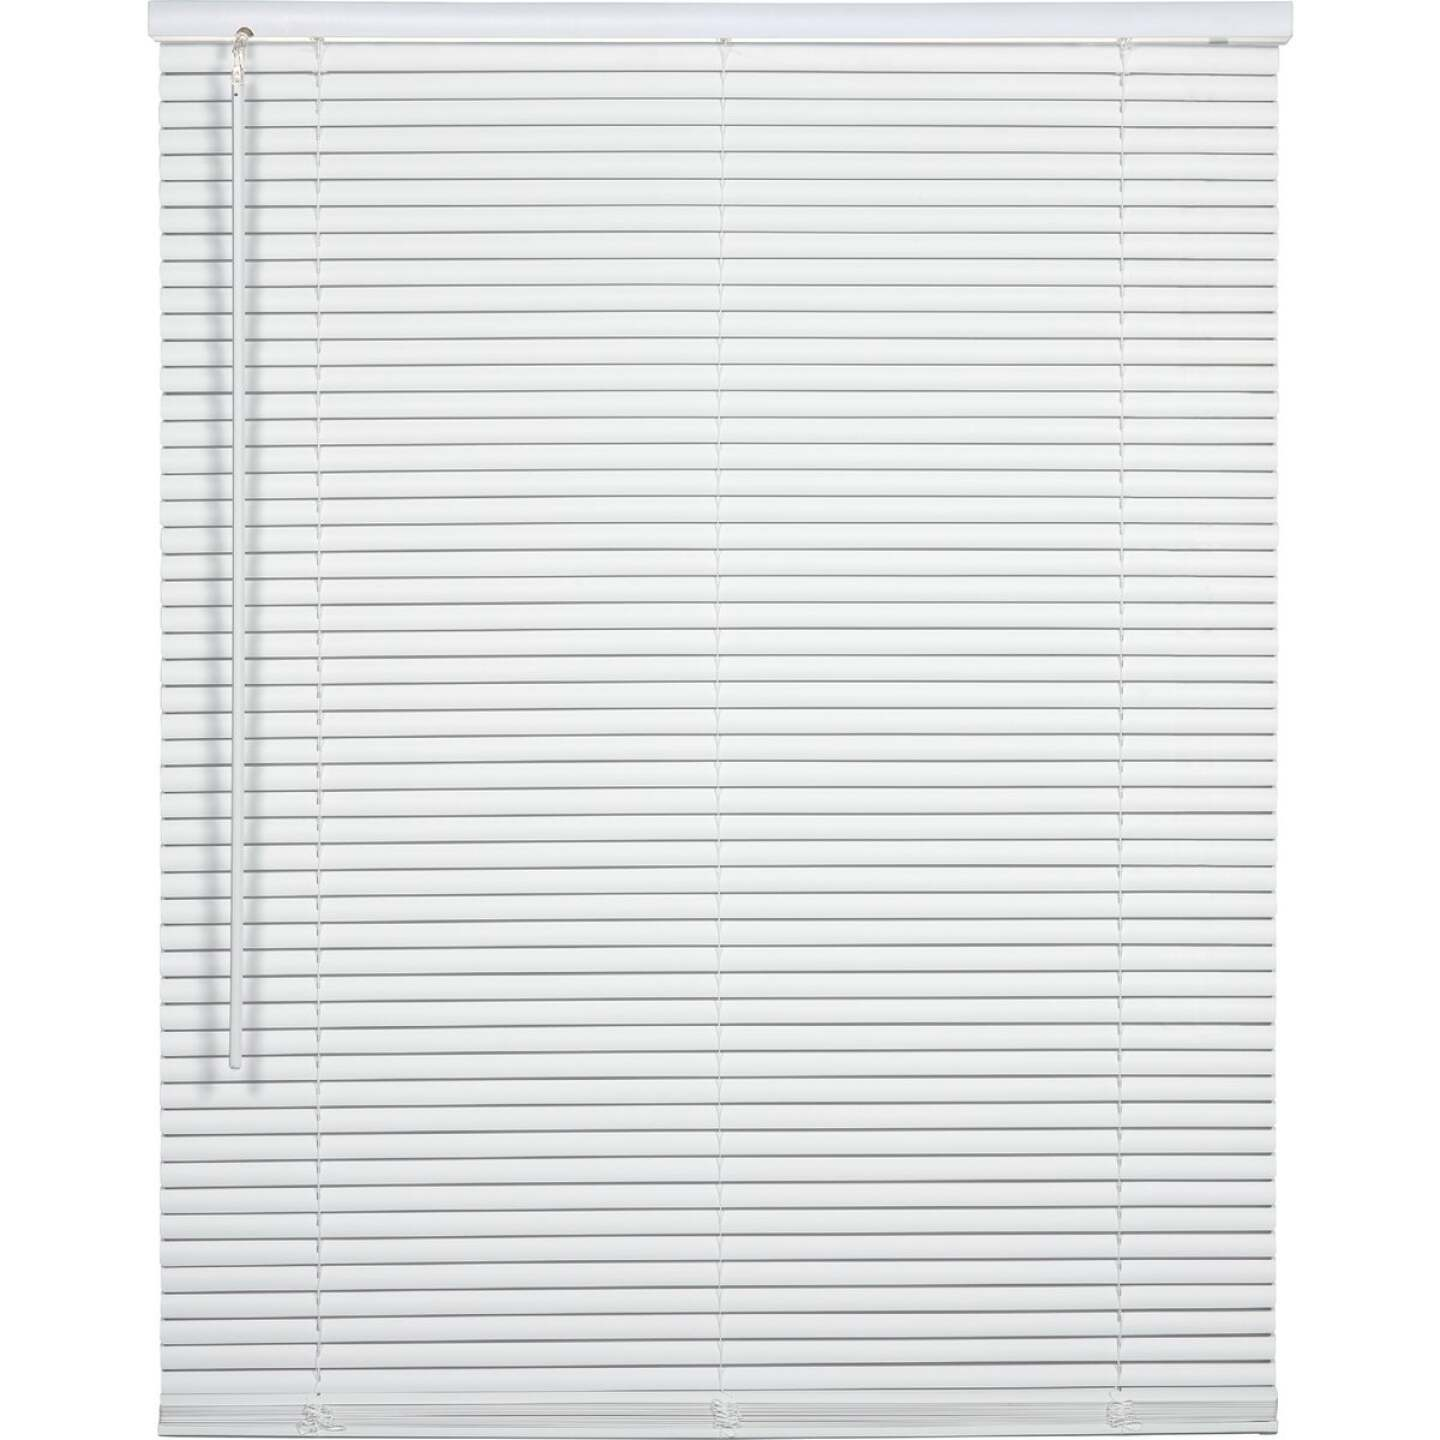 Home Impressions 39 In. x 72 In. x 1 In. White Vinyl Light Filtering Cordless Mini Blind Image 1